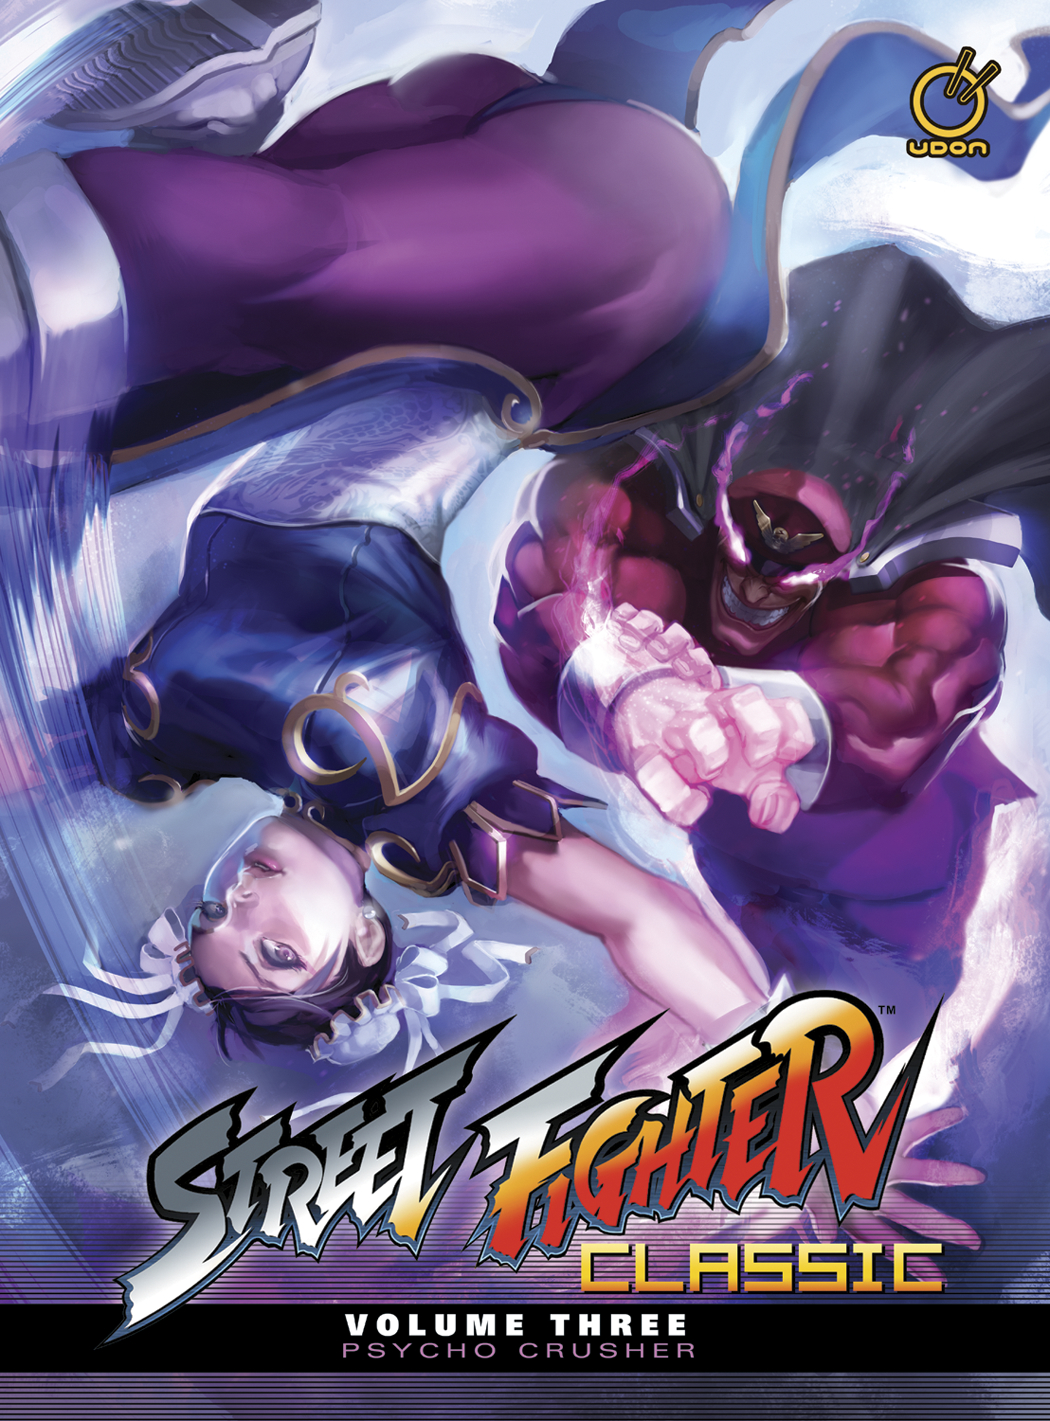 STREET FIGHTER CLASSIC HC VOL 03 PSYCHO CRUSHER